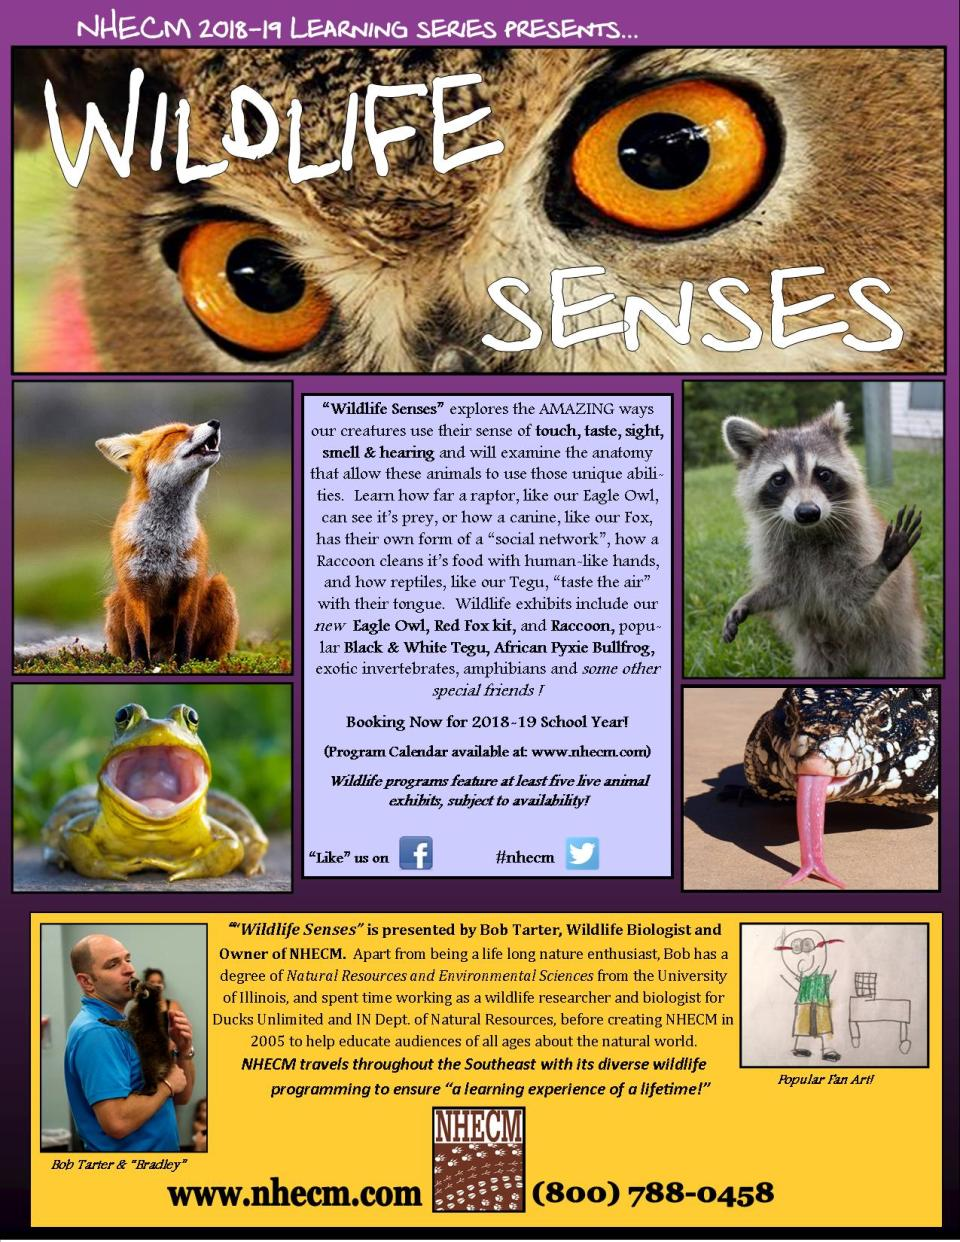 WildlifeSenses18-19 Flier